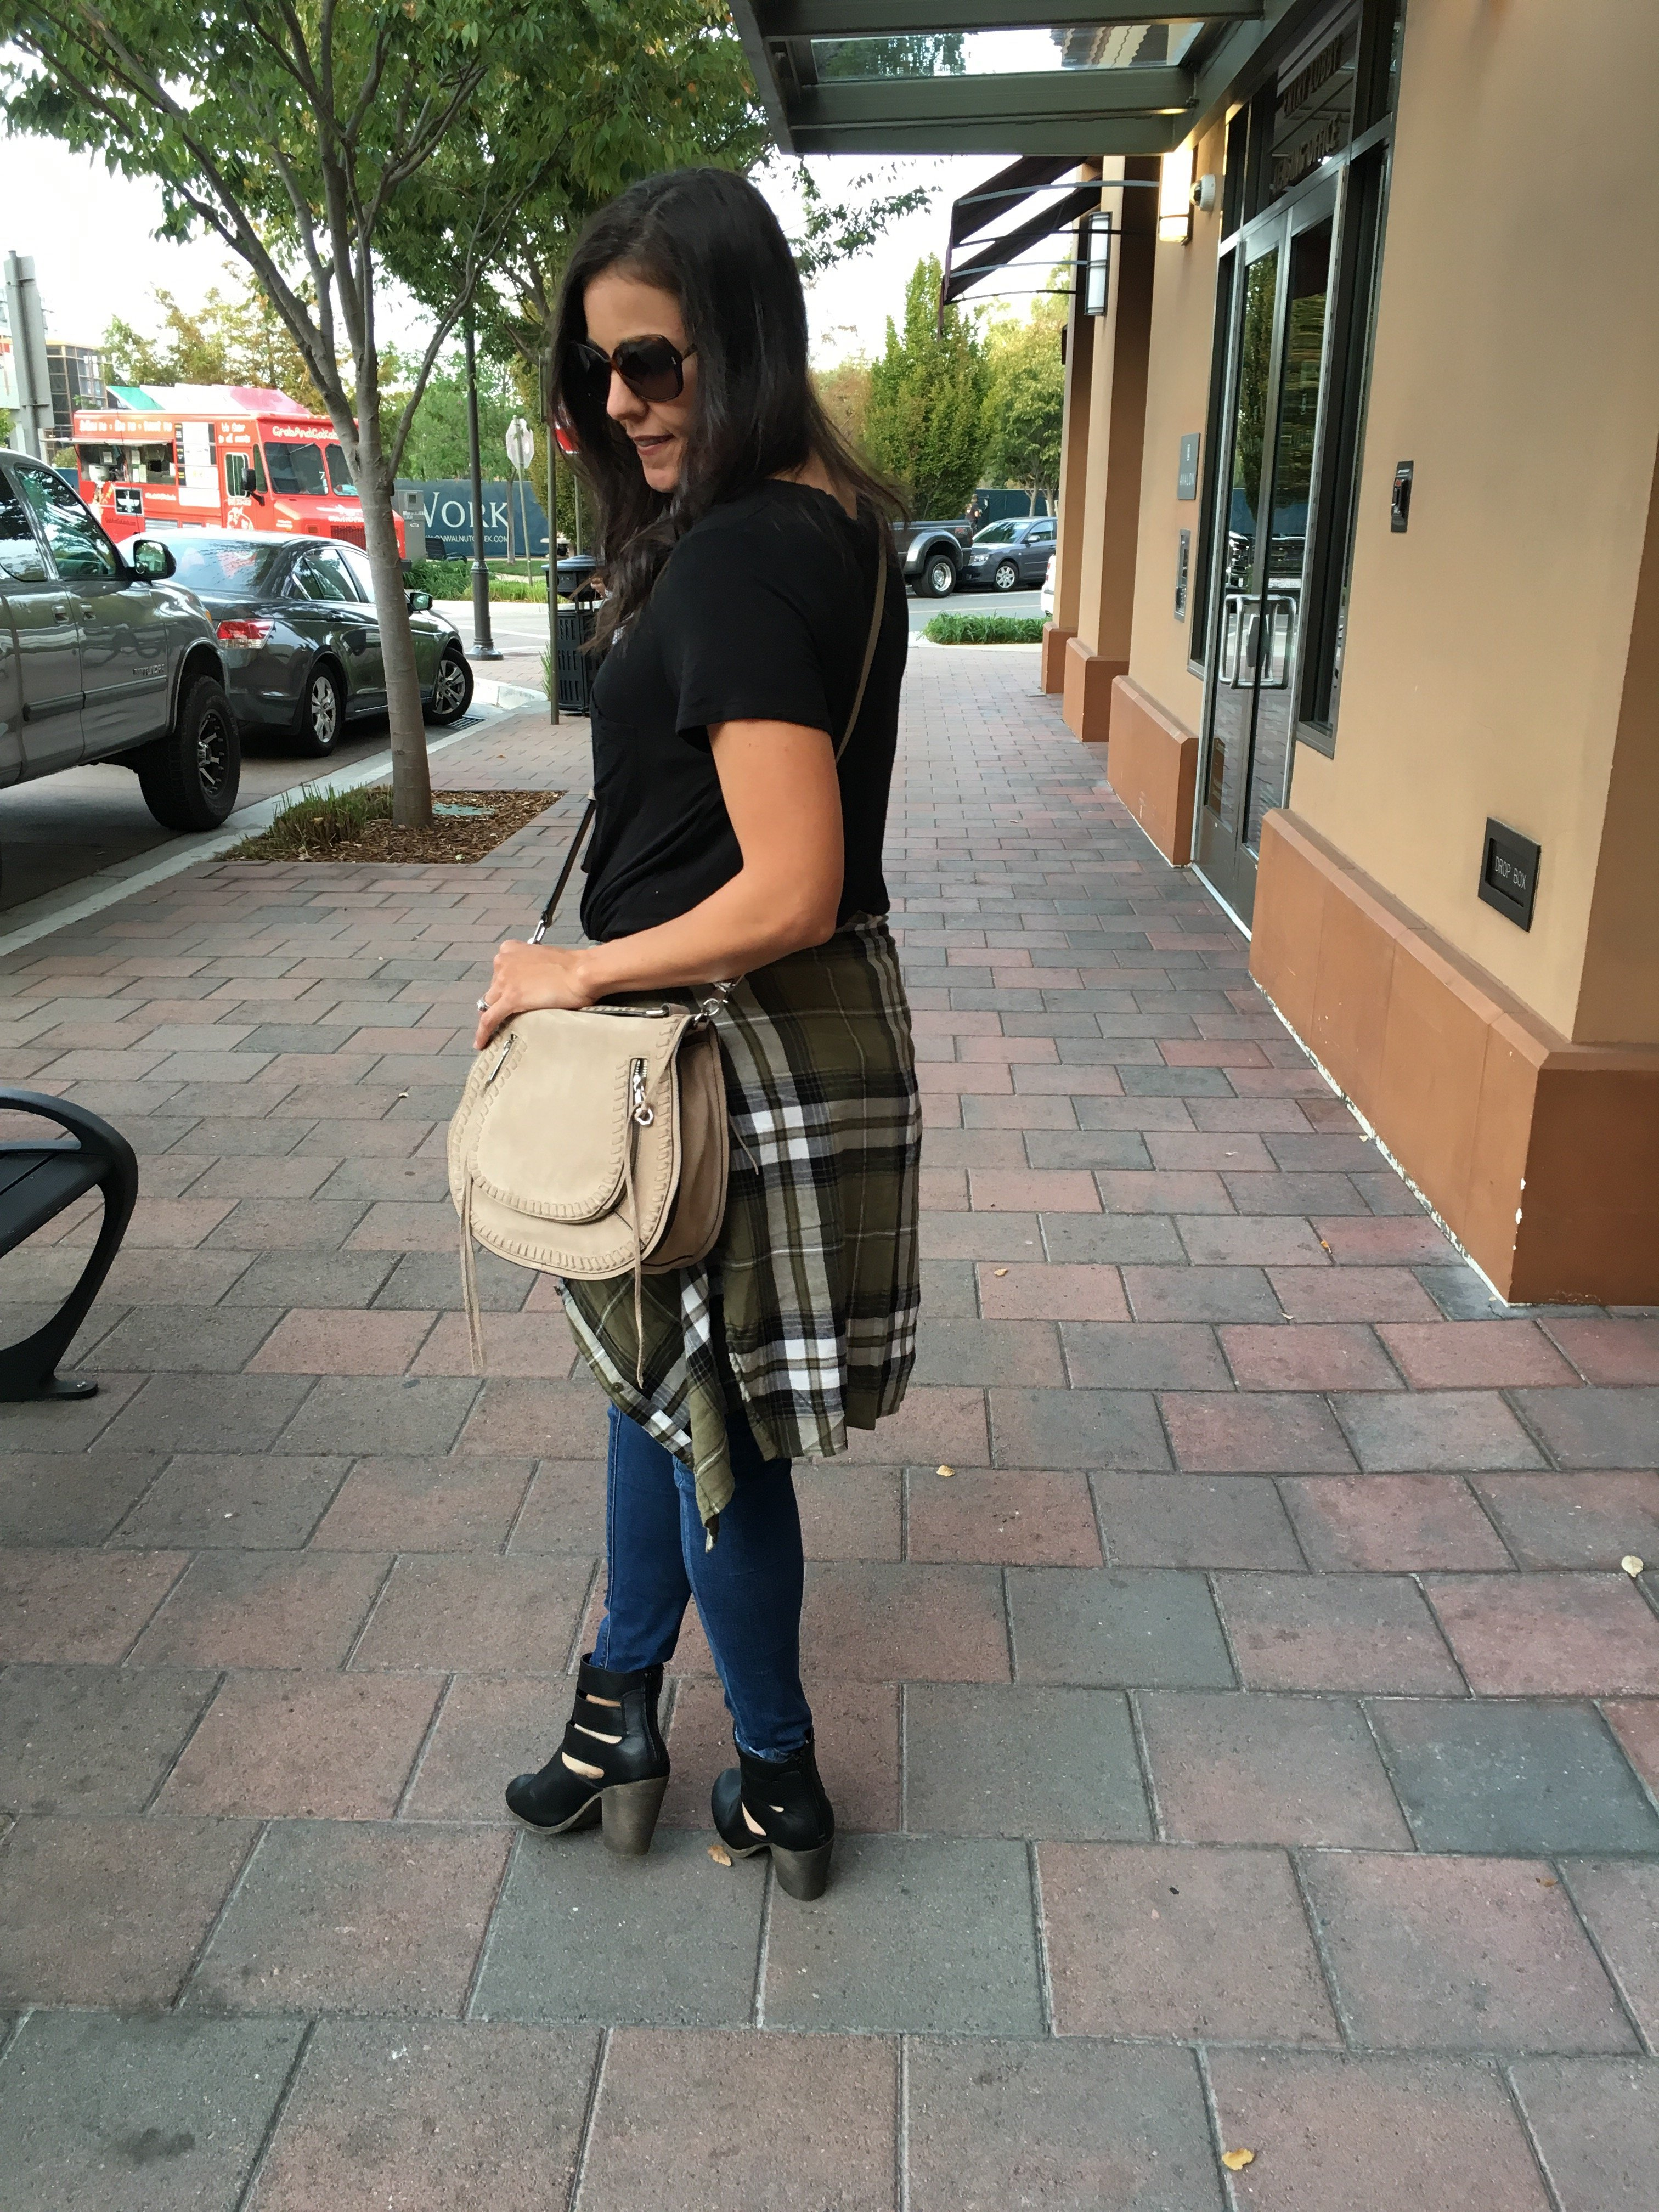 Plaid shirt outfit | how to style a plaid shirt | fall and winter style ideas | fall fashion tips |cool weather fashion